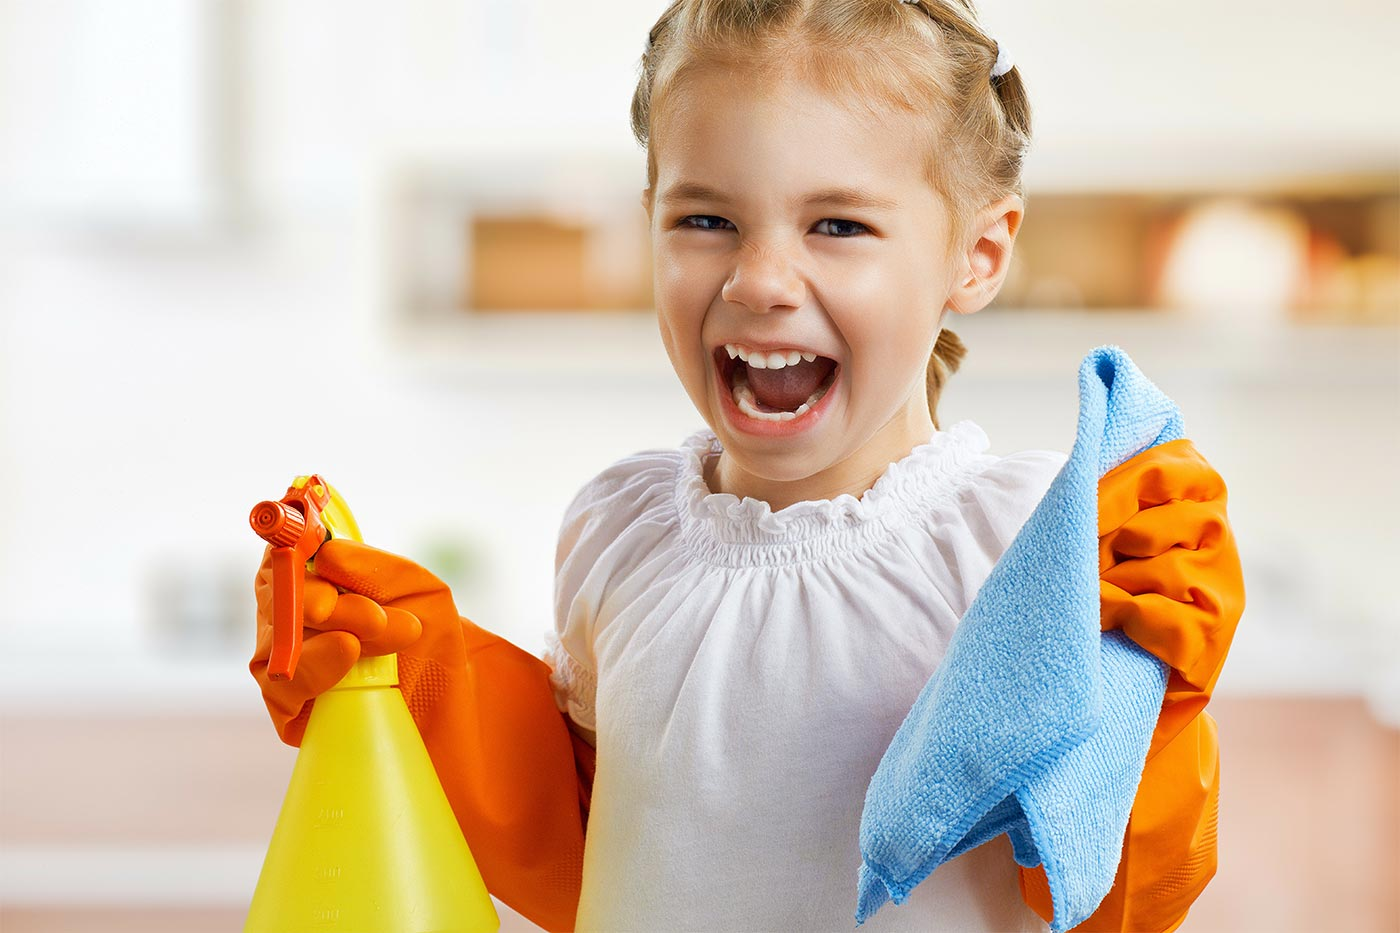 Little girl excited to do chores